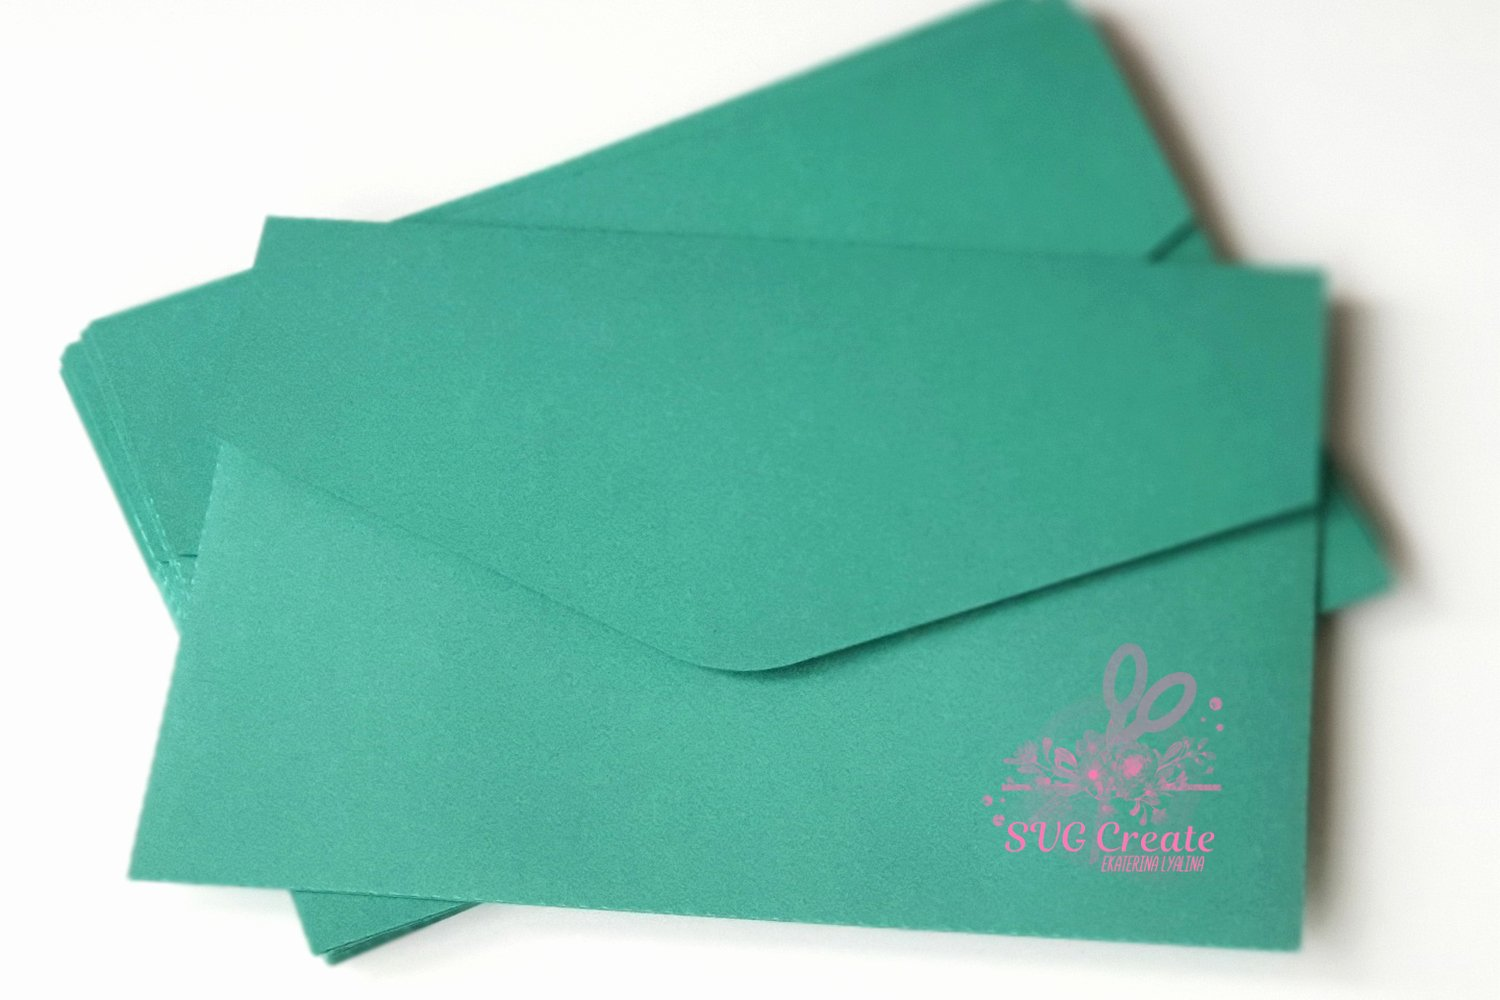 Printable Envelope Template Pdf Beautiful Envelope Template Svg Printable Pdf Diy Digital